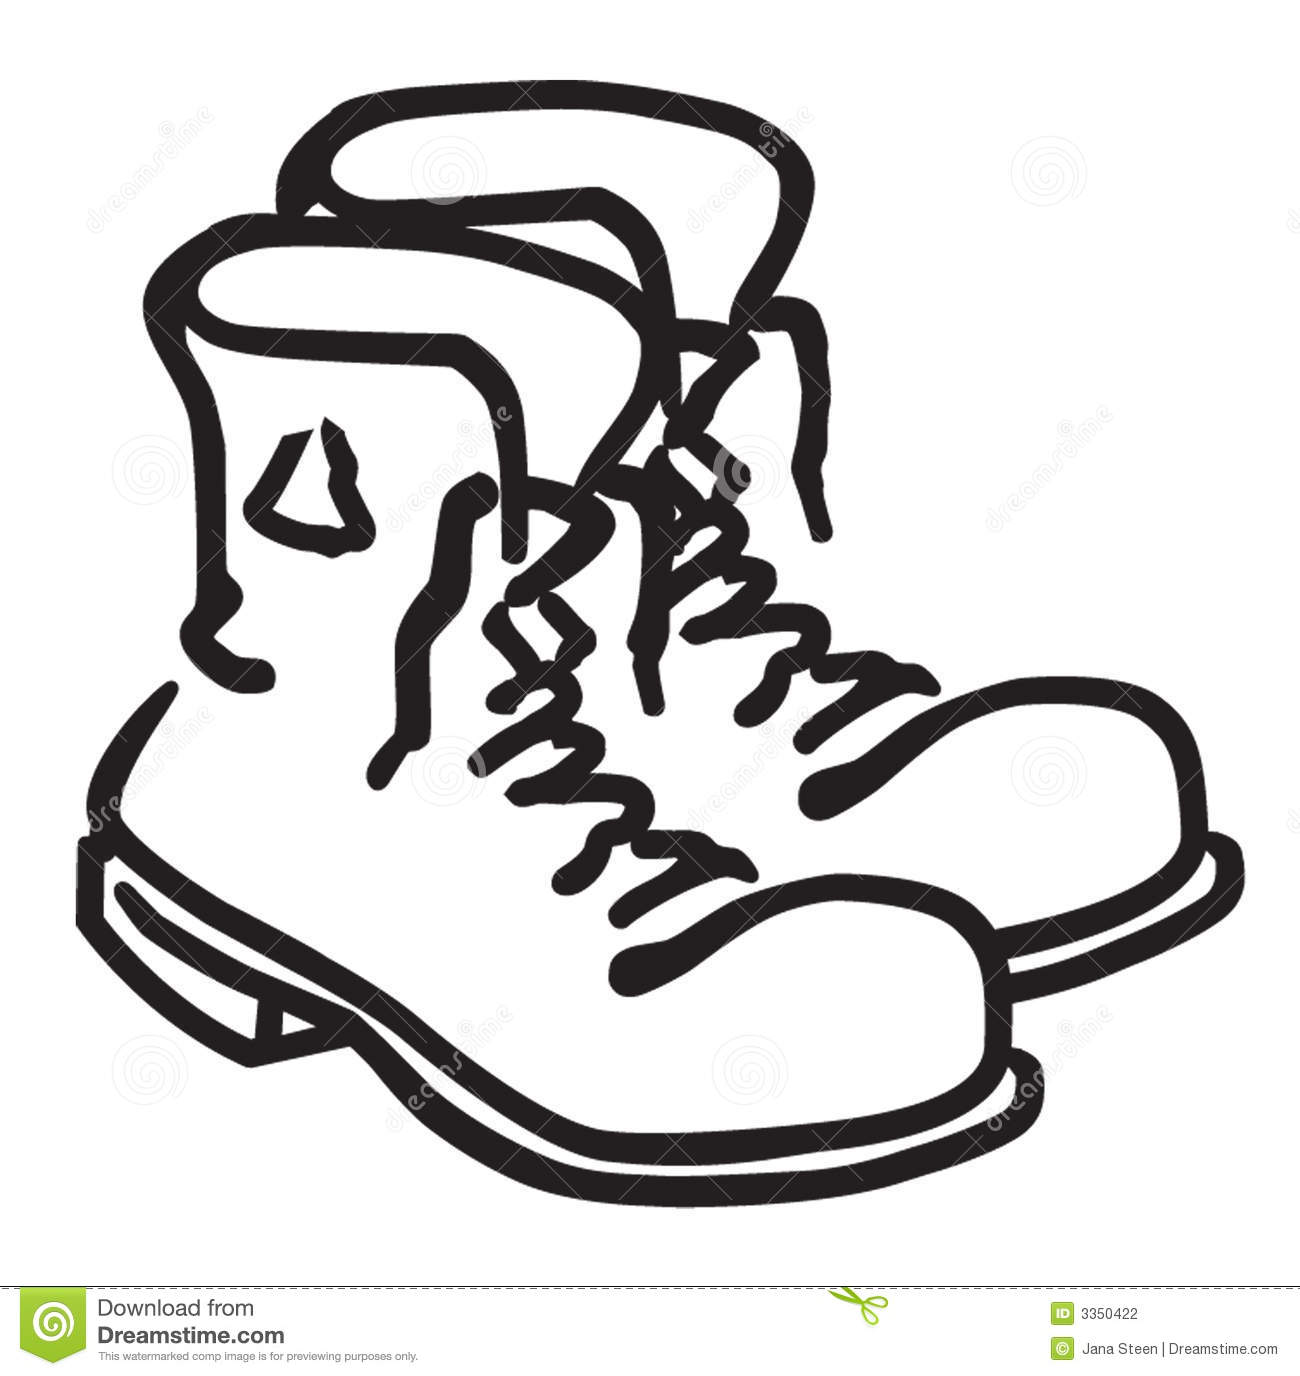 Hiking boot at getdrawings. Boots clipart drawing